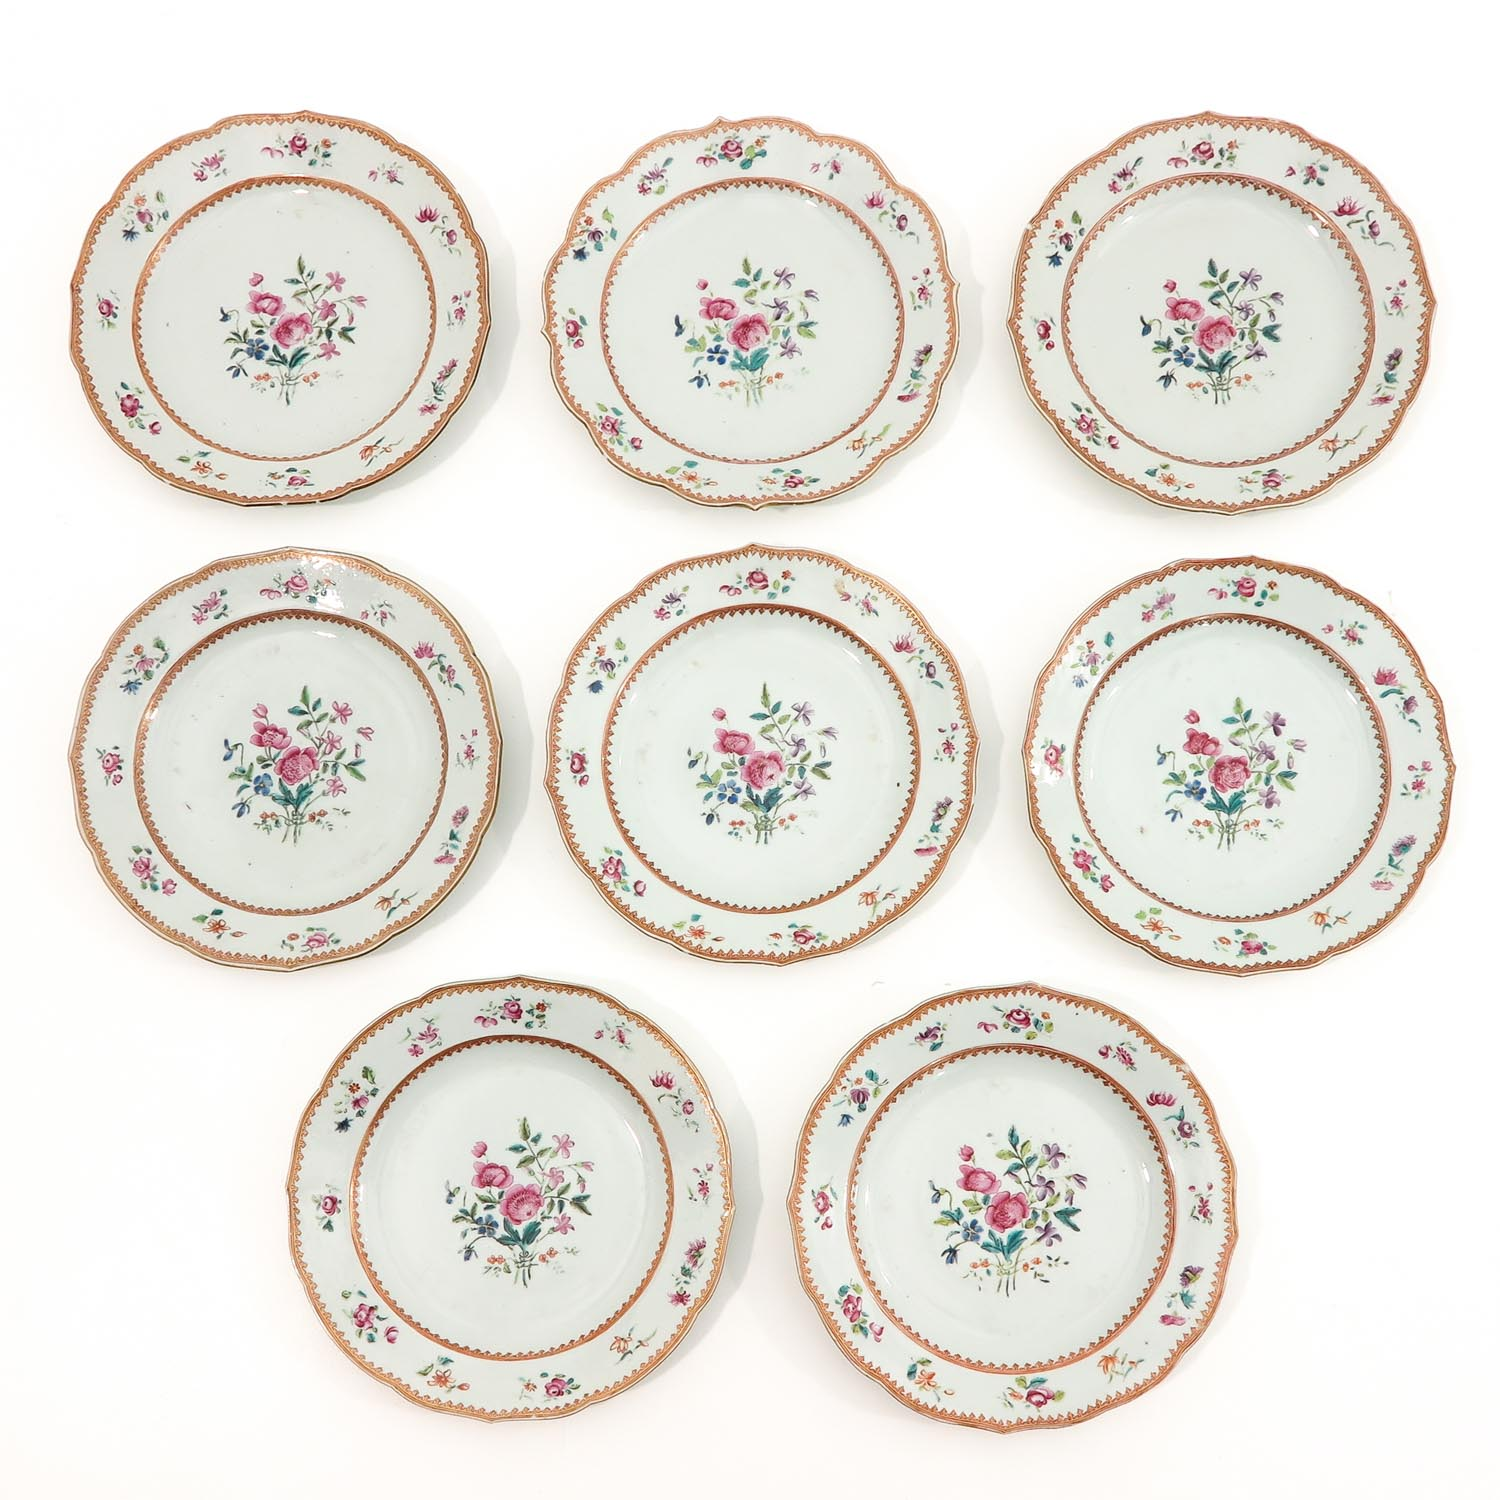 A Series of 8 Famille Rose Plates